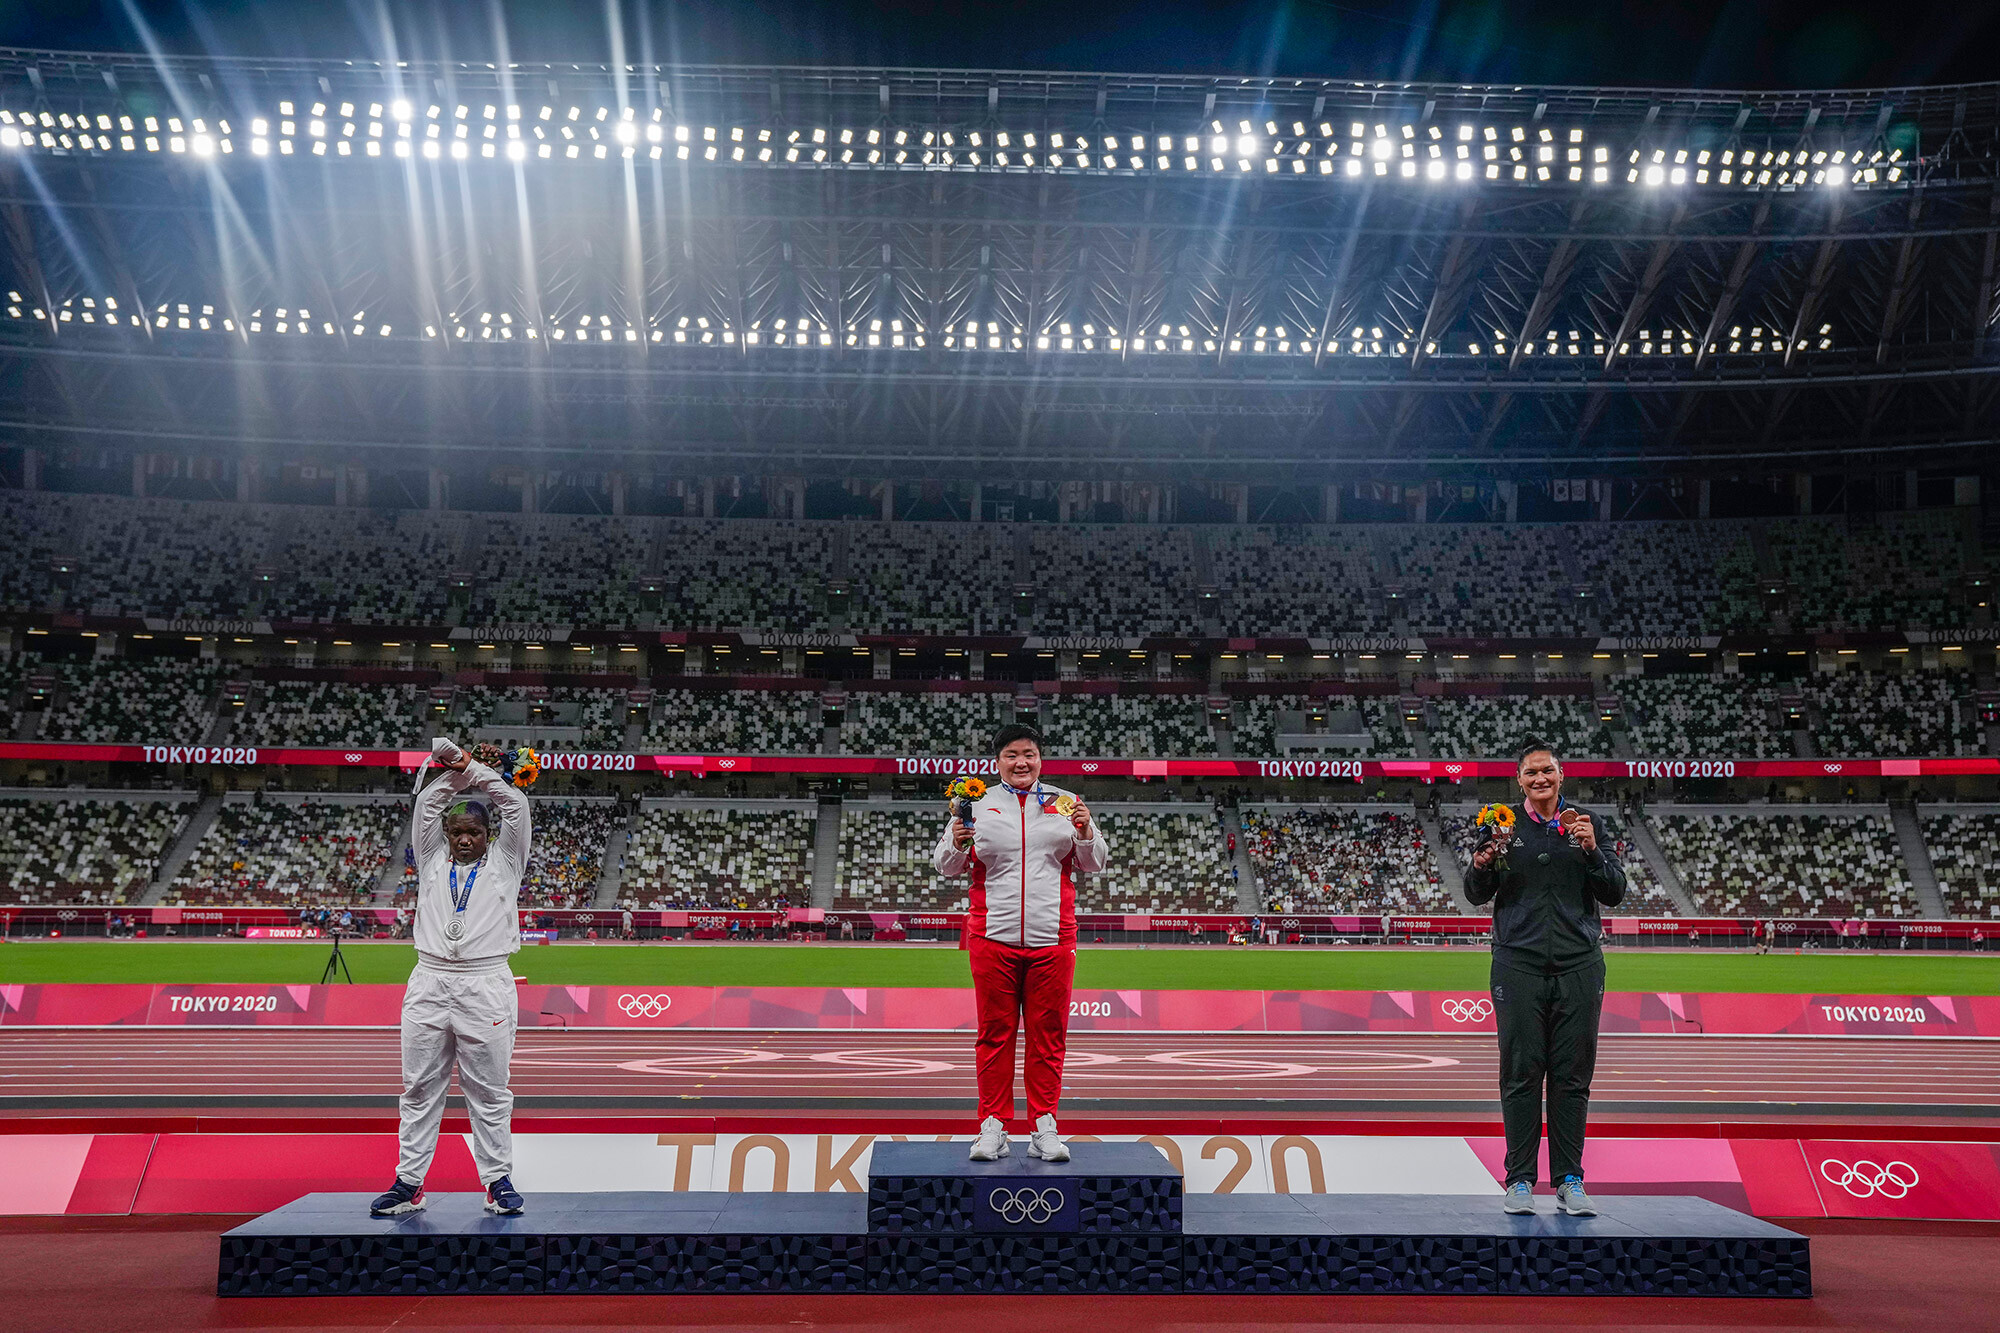 Raven Saunders' X podium protest: What it means and why the IOC is investigating